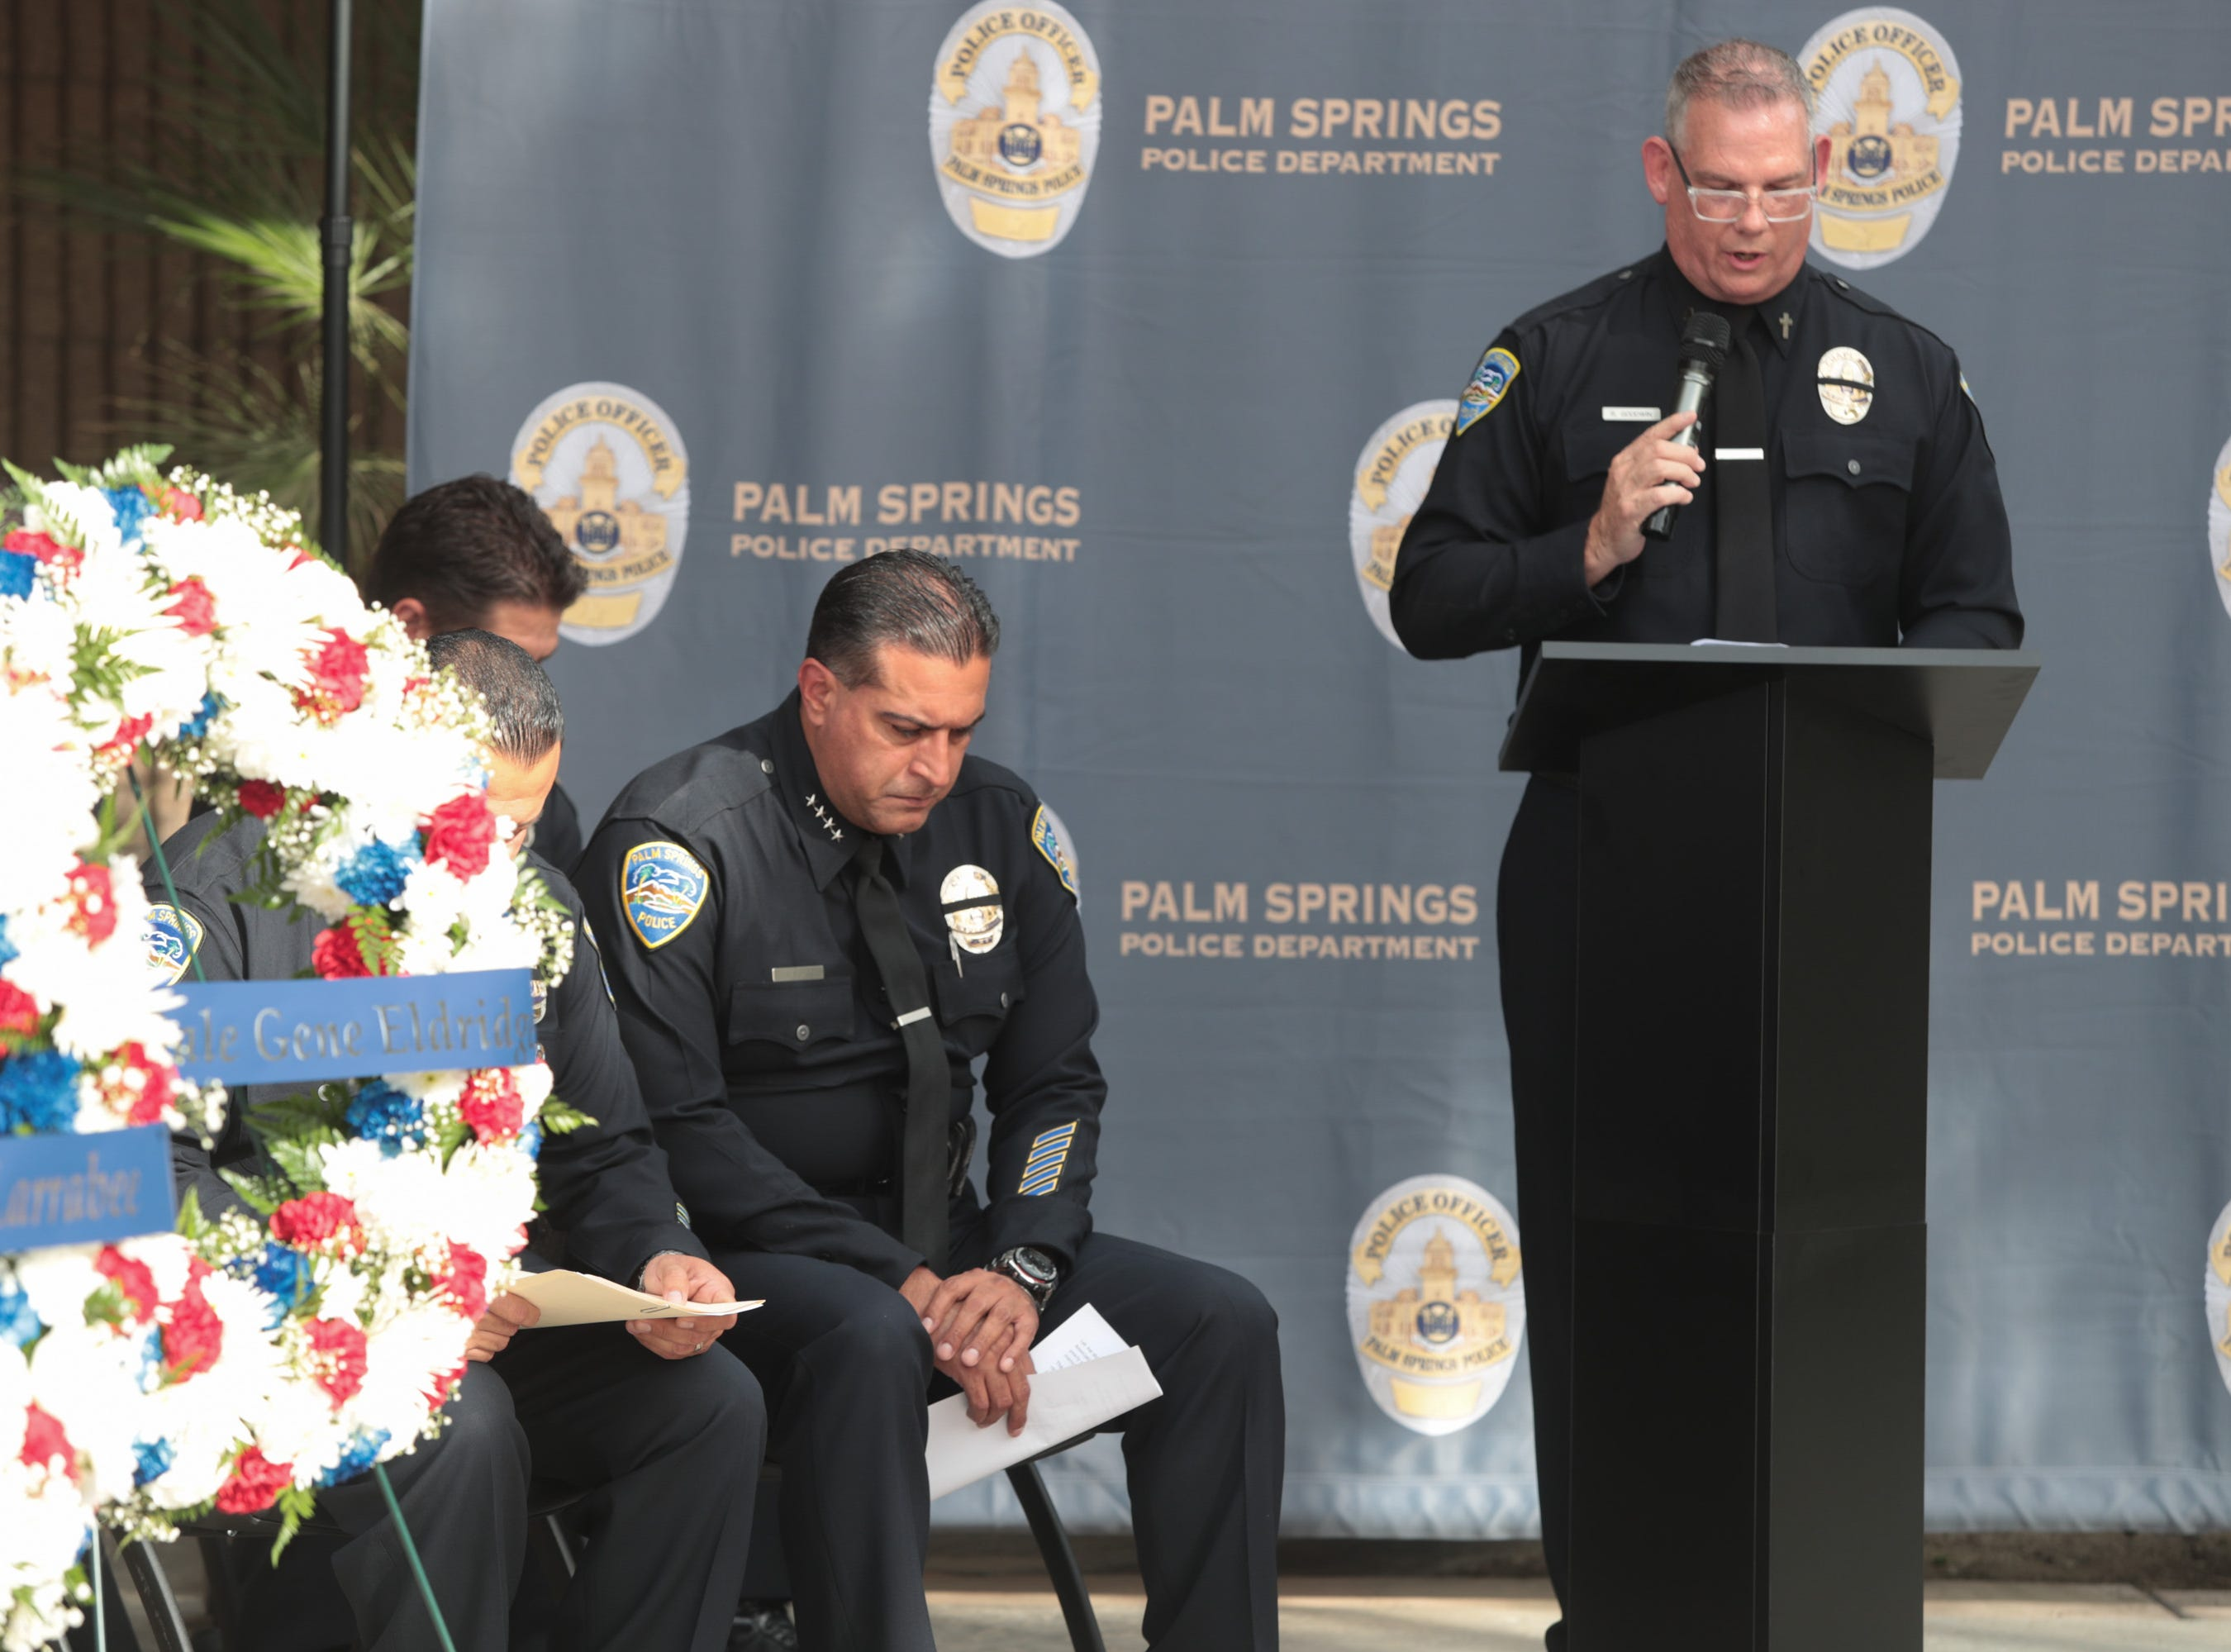 Opening remarks are made by Chaplain Rob Goodwin during a ceremony honoring fallen officers on Peace Officers Memorial Day, Palm Springs, Calif., May 15, 2019.